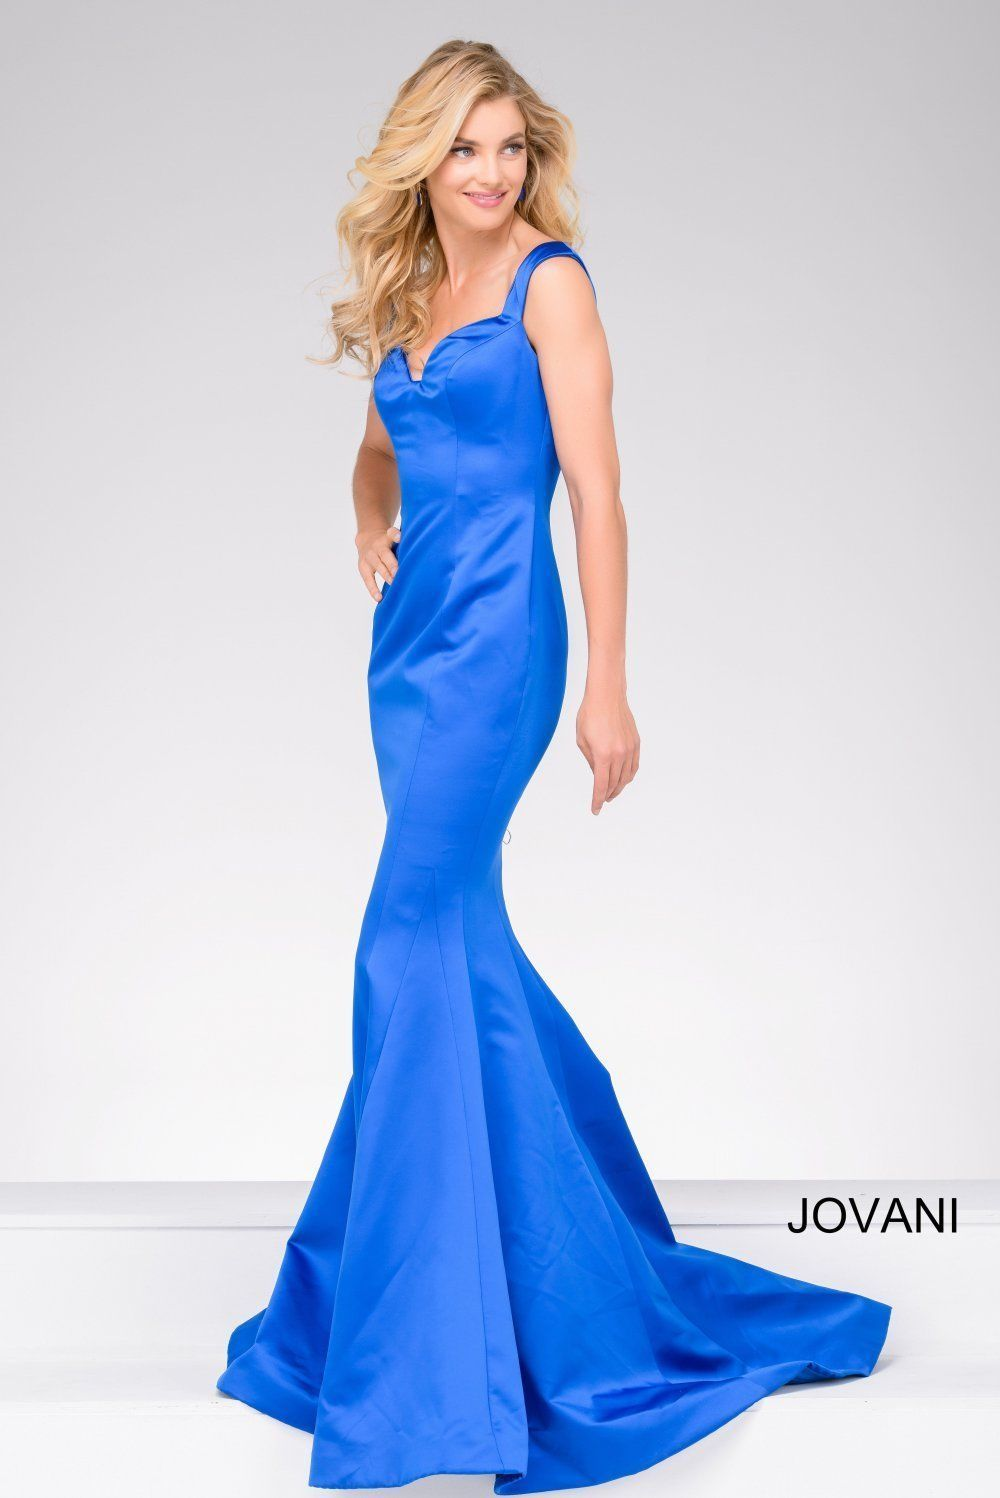 Awesome great jovani dress gown prom price guaranteelayaway